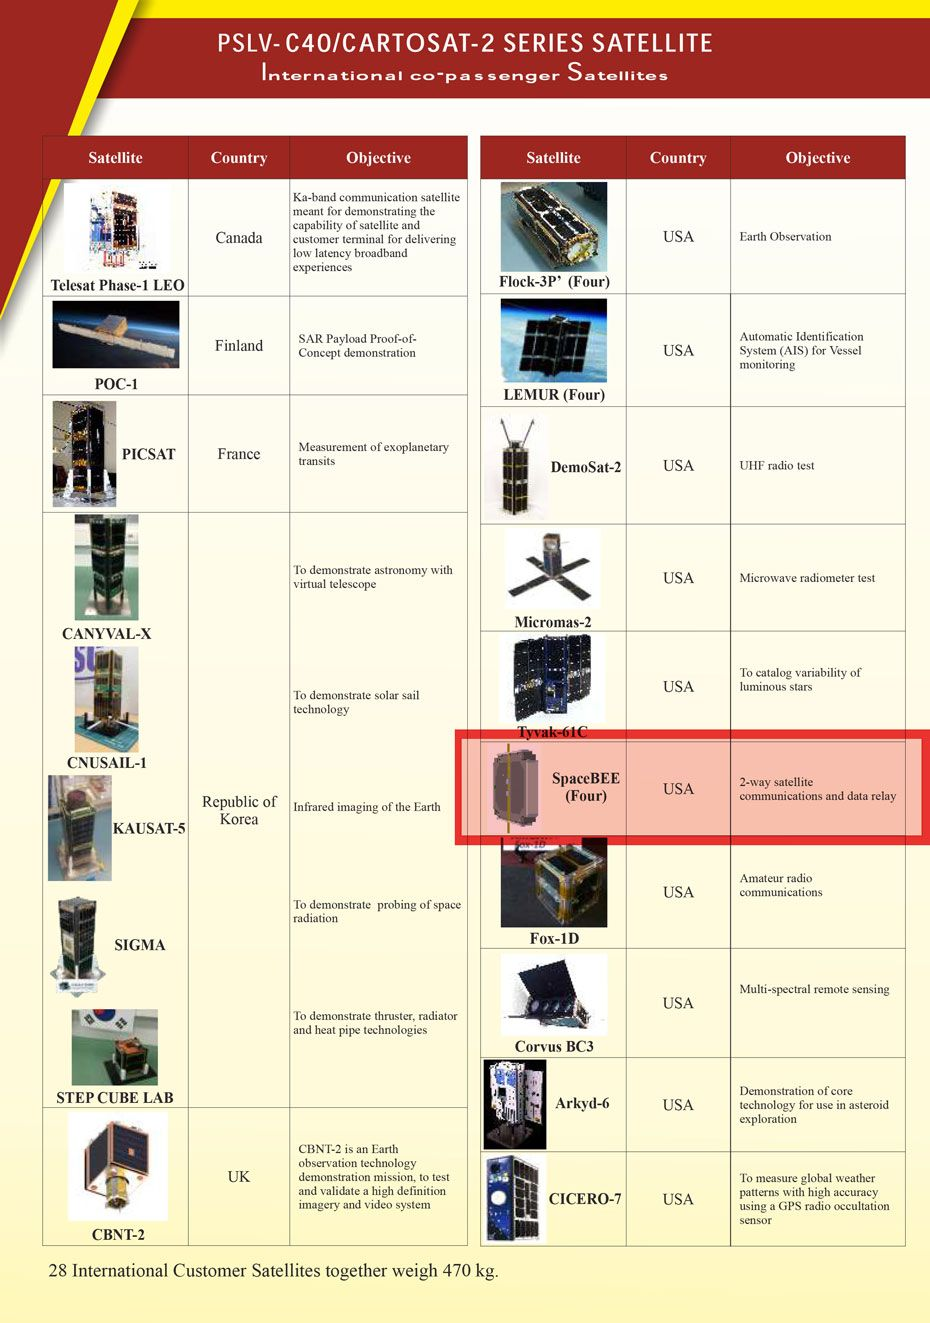 ISRO's list of satellite's aboard the Polar Satellite Launch Vehicle (PSLV) rocket.